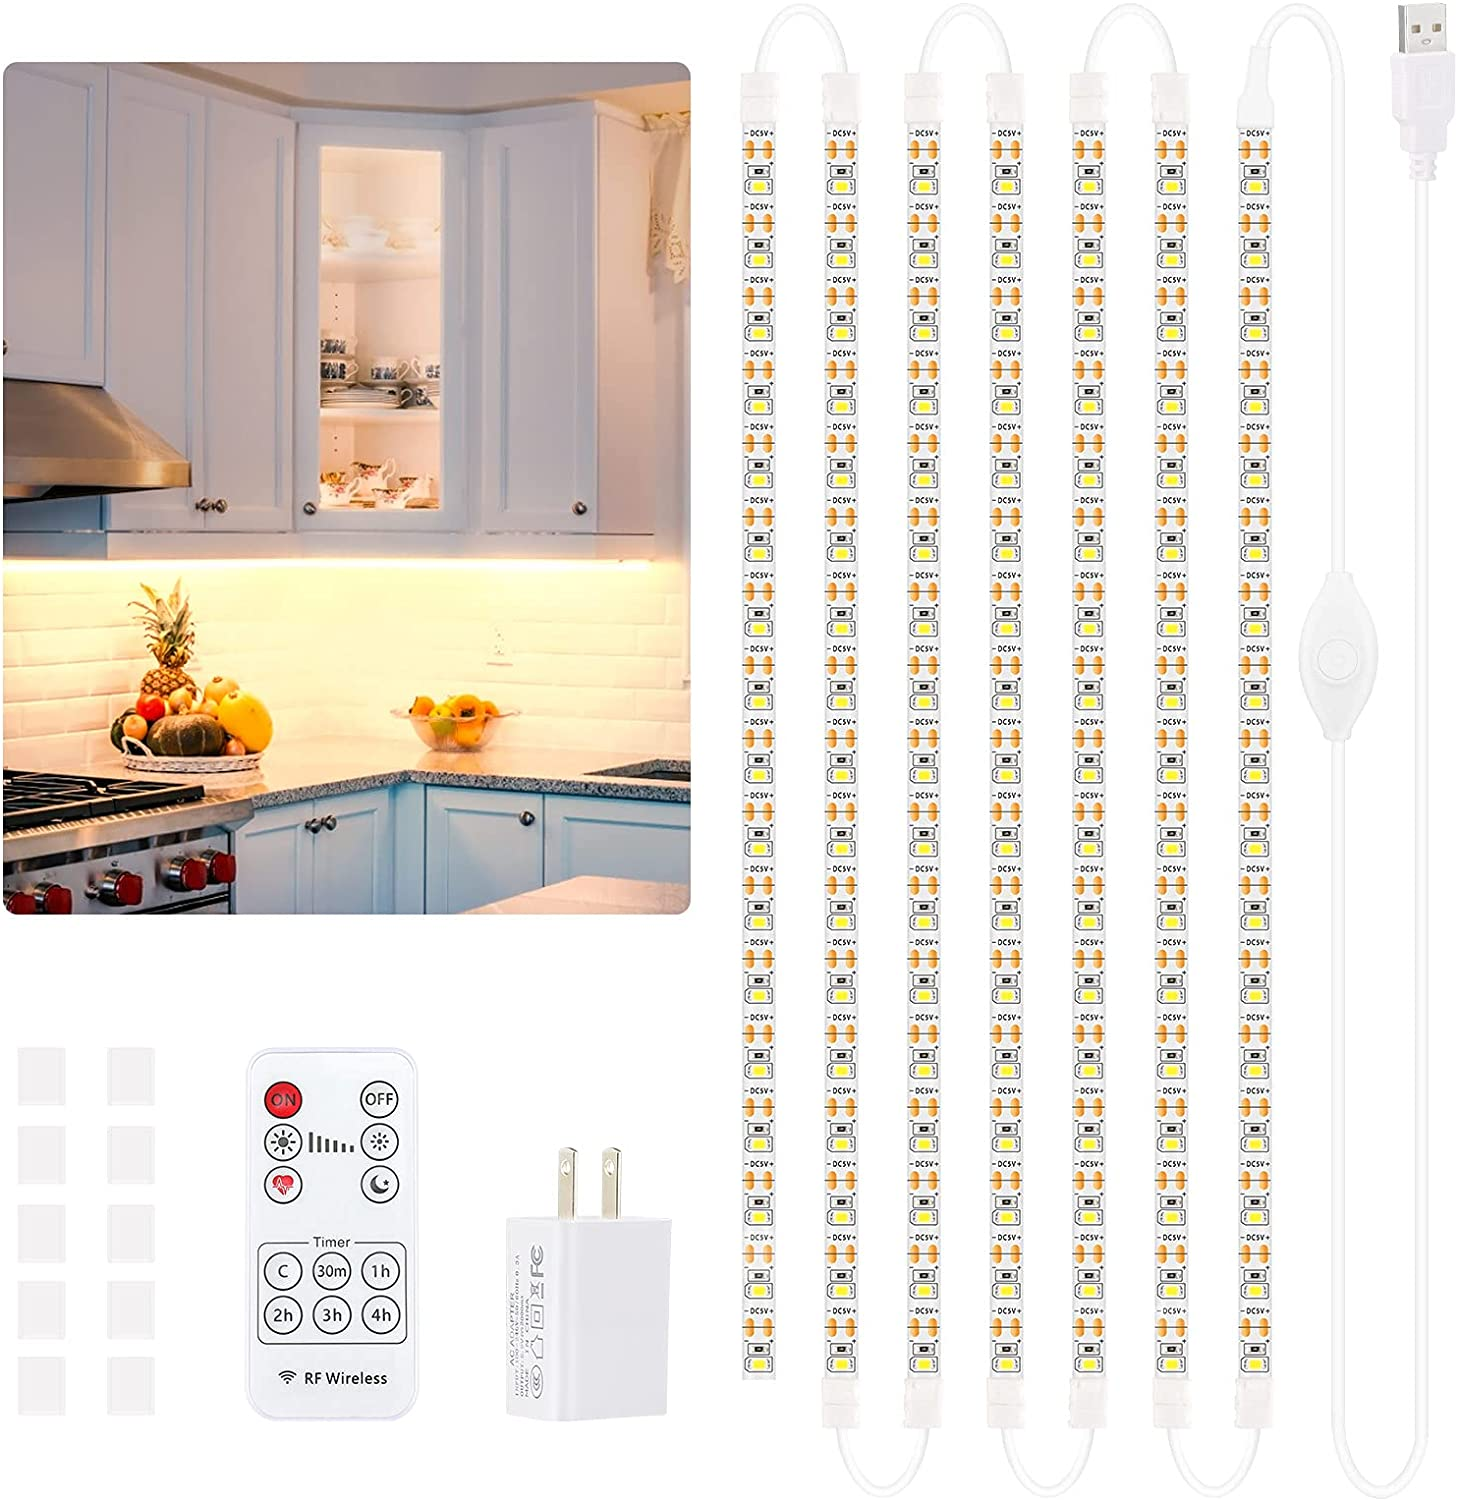 UNILLKING Under Cabinet LED Lighting Kit Under Counter Lights for Kitchen led Light Strips with RF Remote 16.4ft Waterproof Cabinet Lighting for Closets Bathroom Shelves Showcase Counters(Warm White)